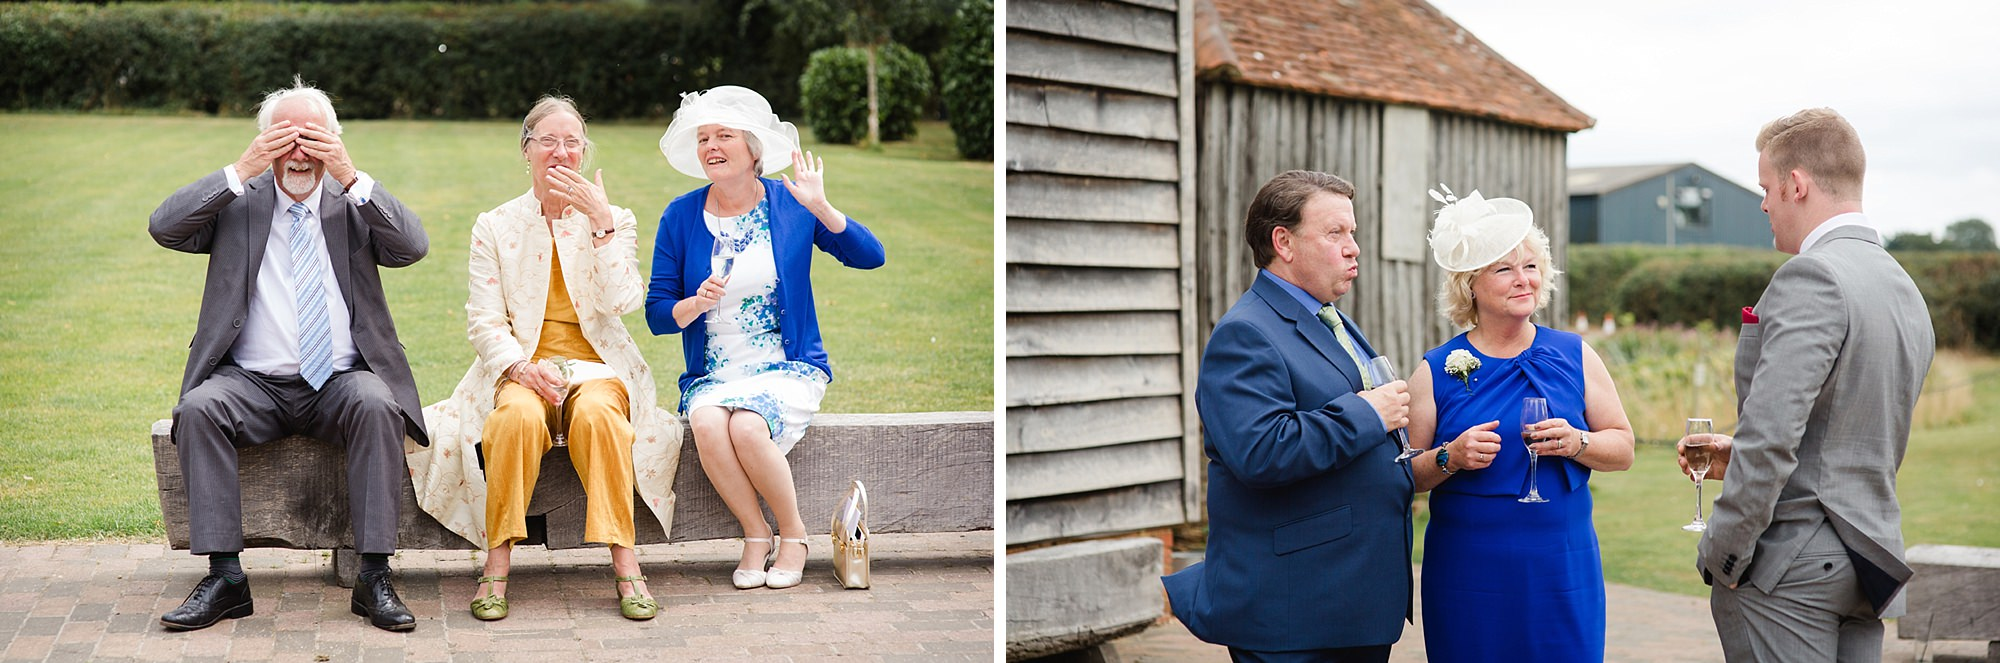 Old Greens Barn Newdigate wedding photography wedding guests